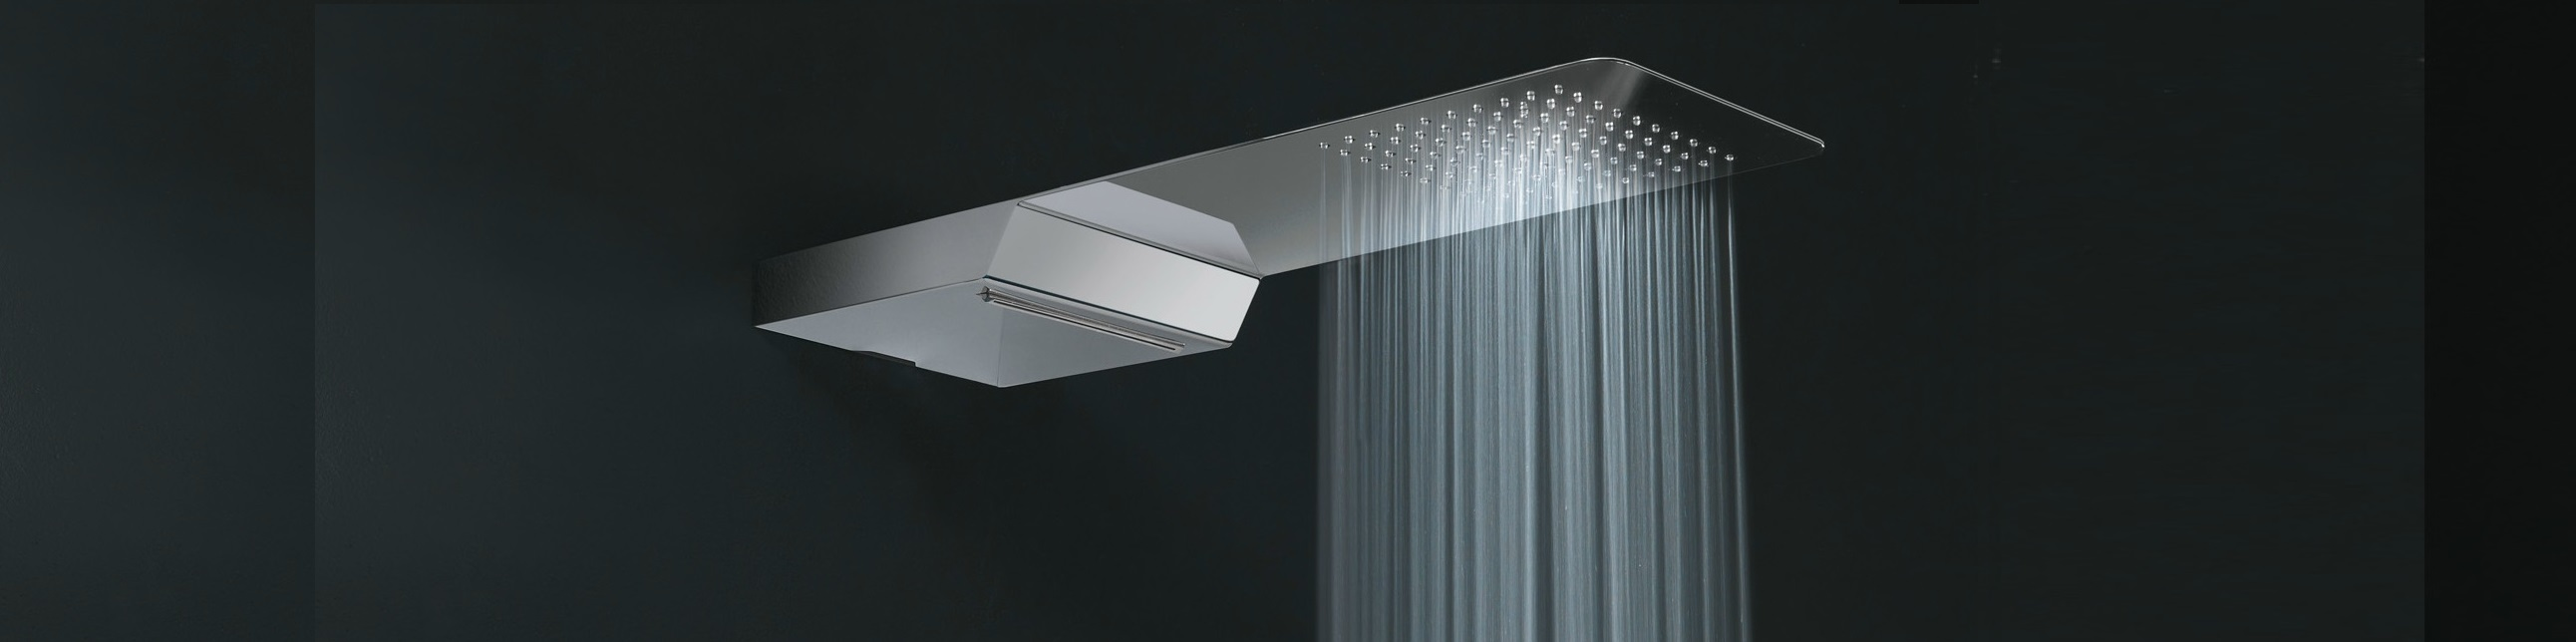 Waterfall Rainfall Showerheads